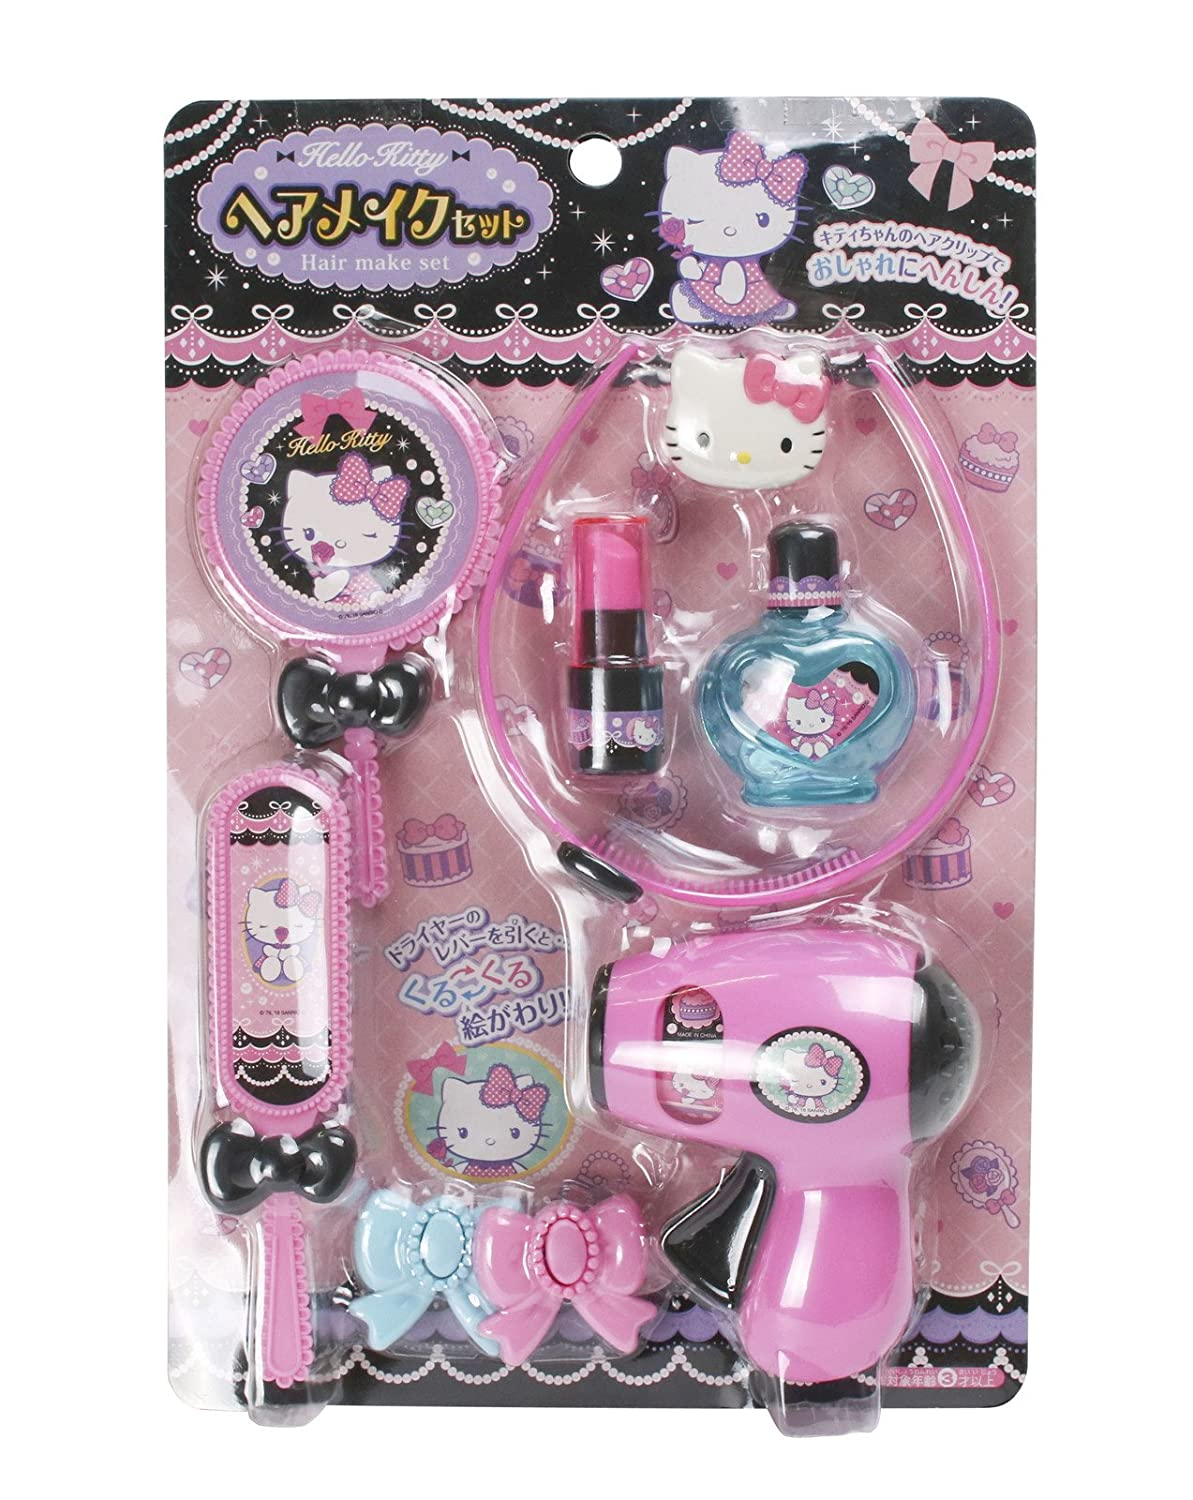 Hello Kitty - Pink Hair and Makeup Set - Includes Hair Dryer, Brush, Mirror Ect. (Japan Import)